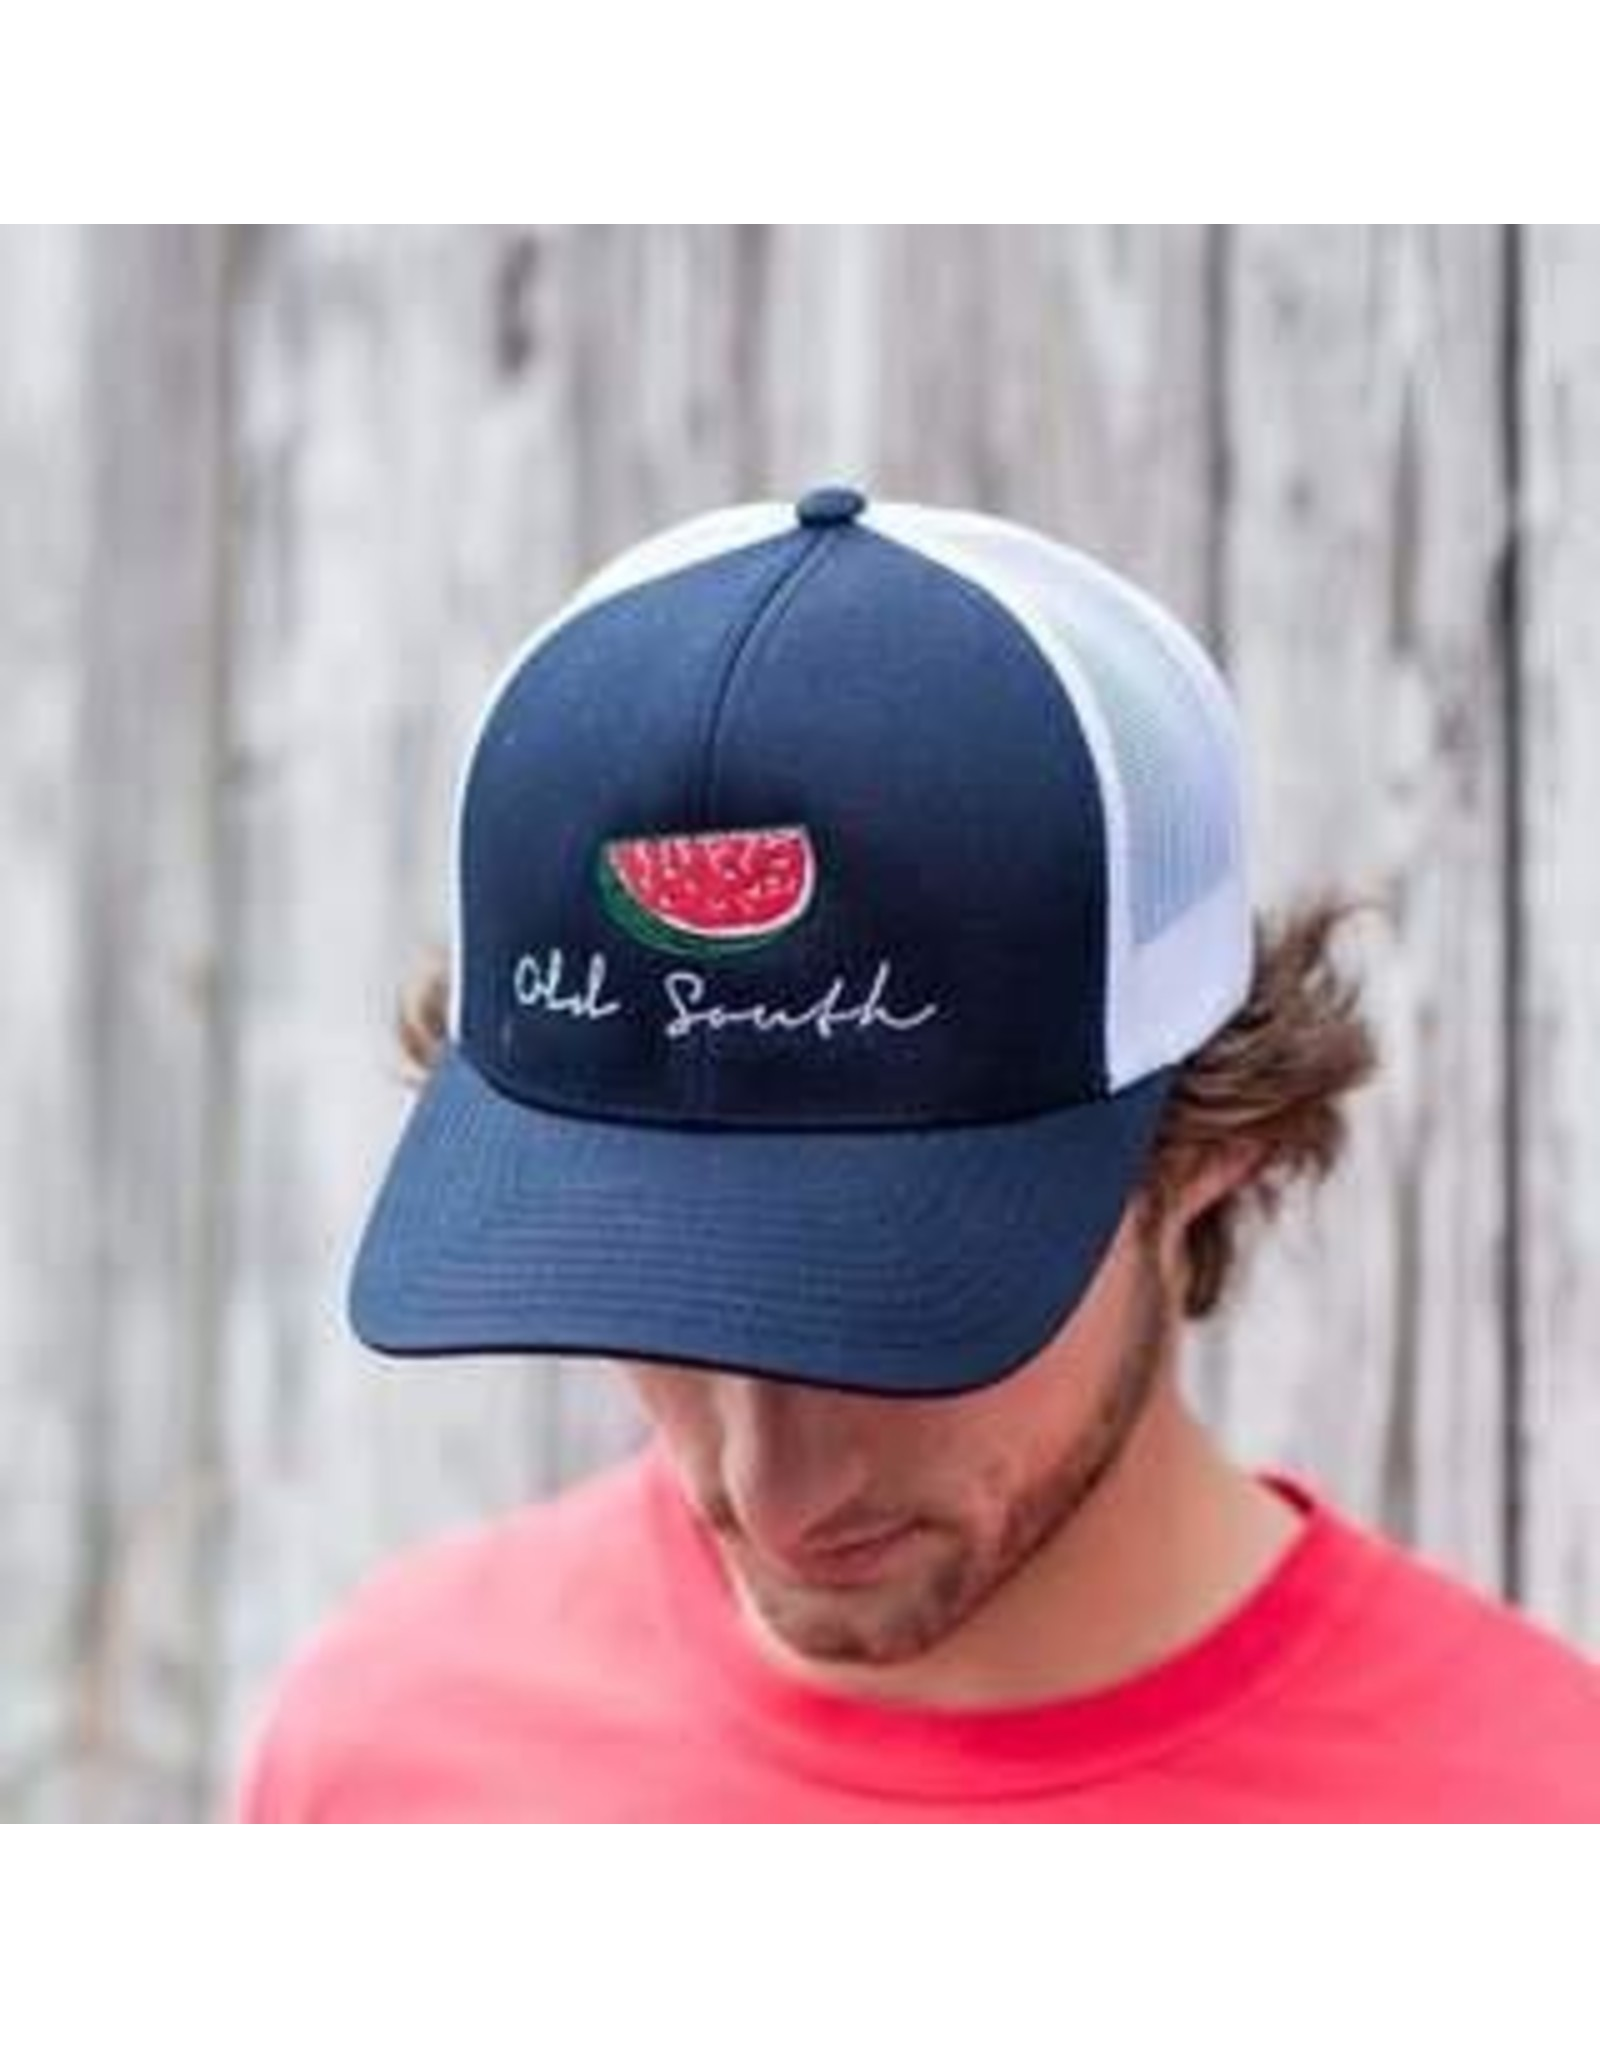 Hats OLD SOUTH NS-WAT<br /> Watermelon